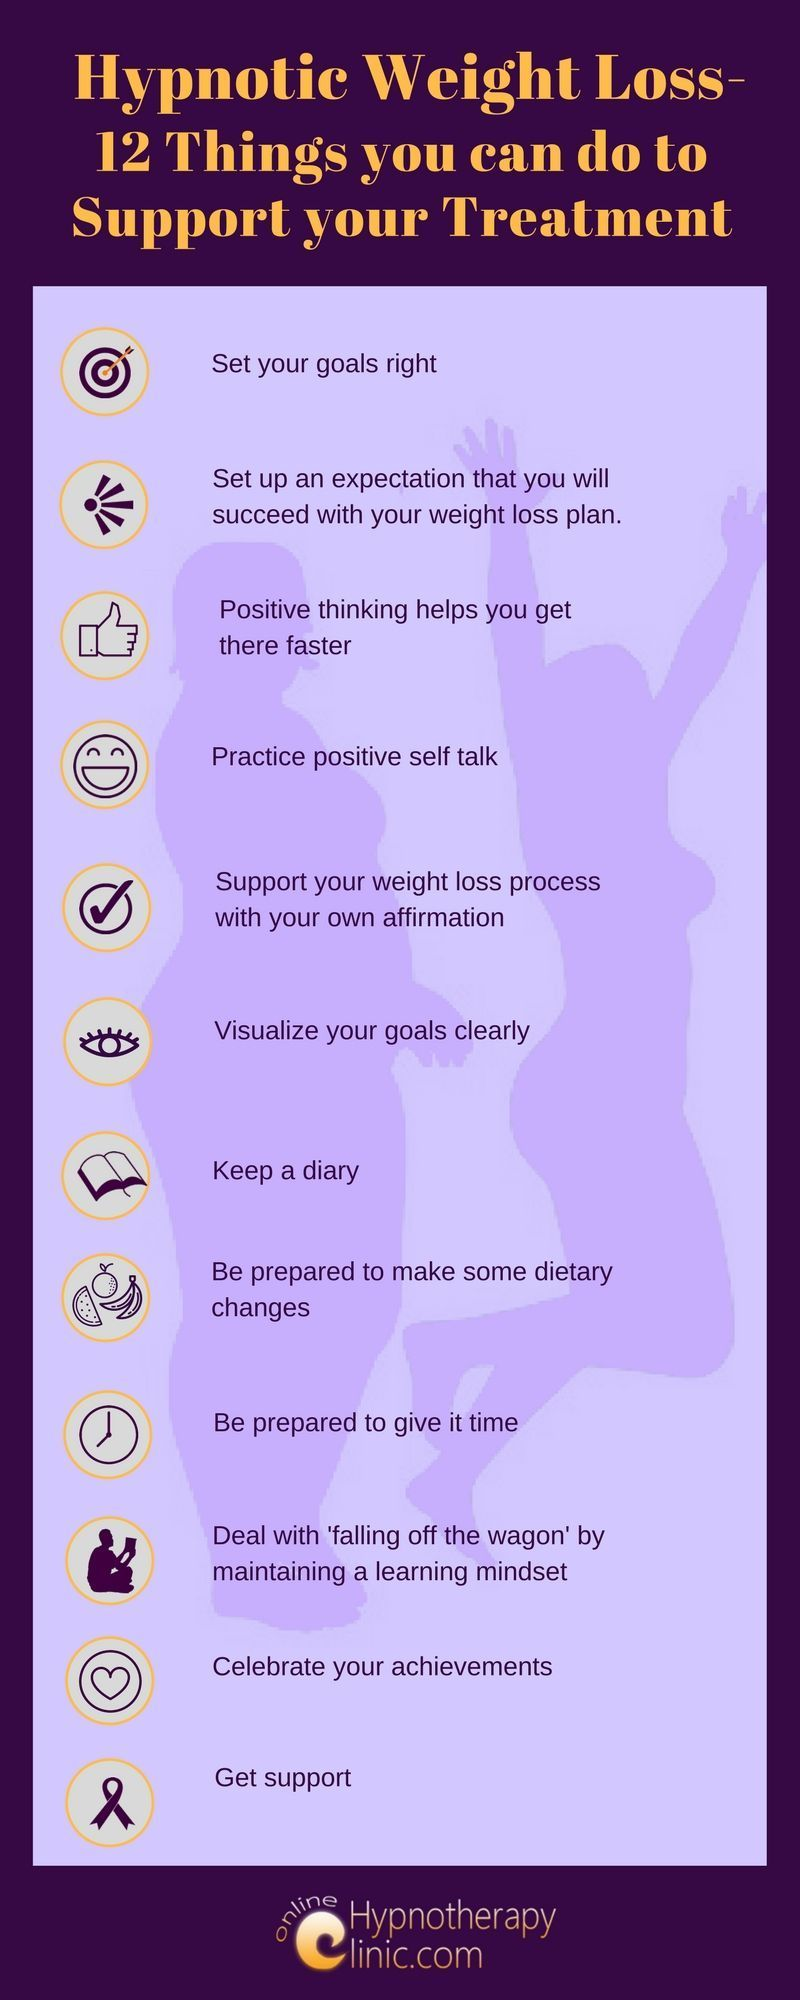 Hypnotic Weight Loss- 12 Things you can do to Support your